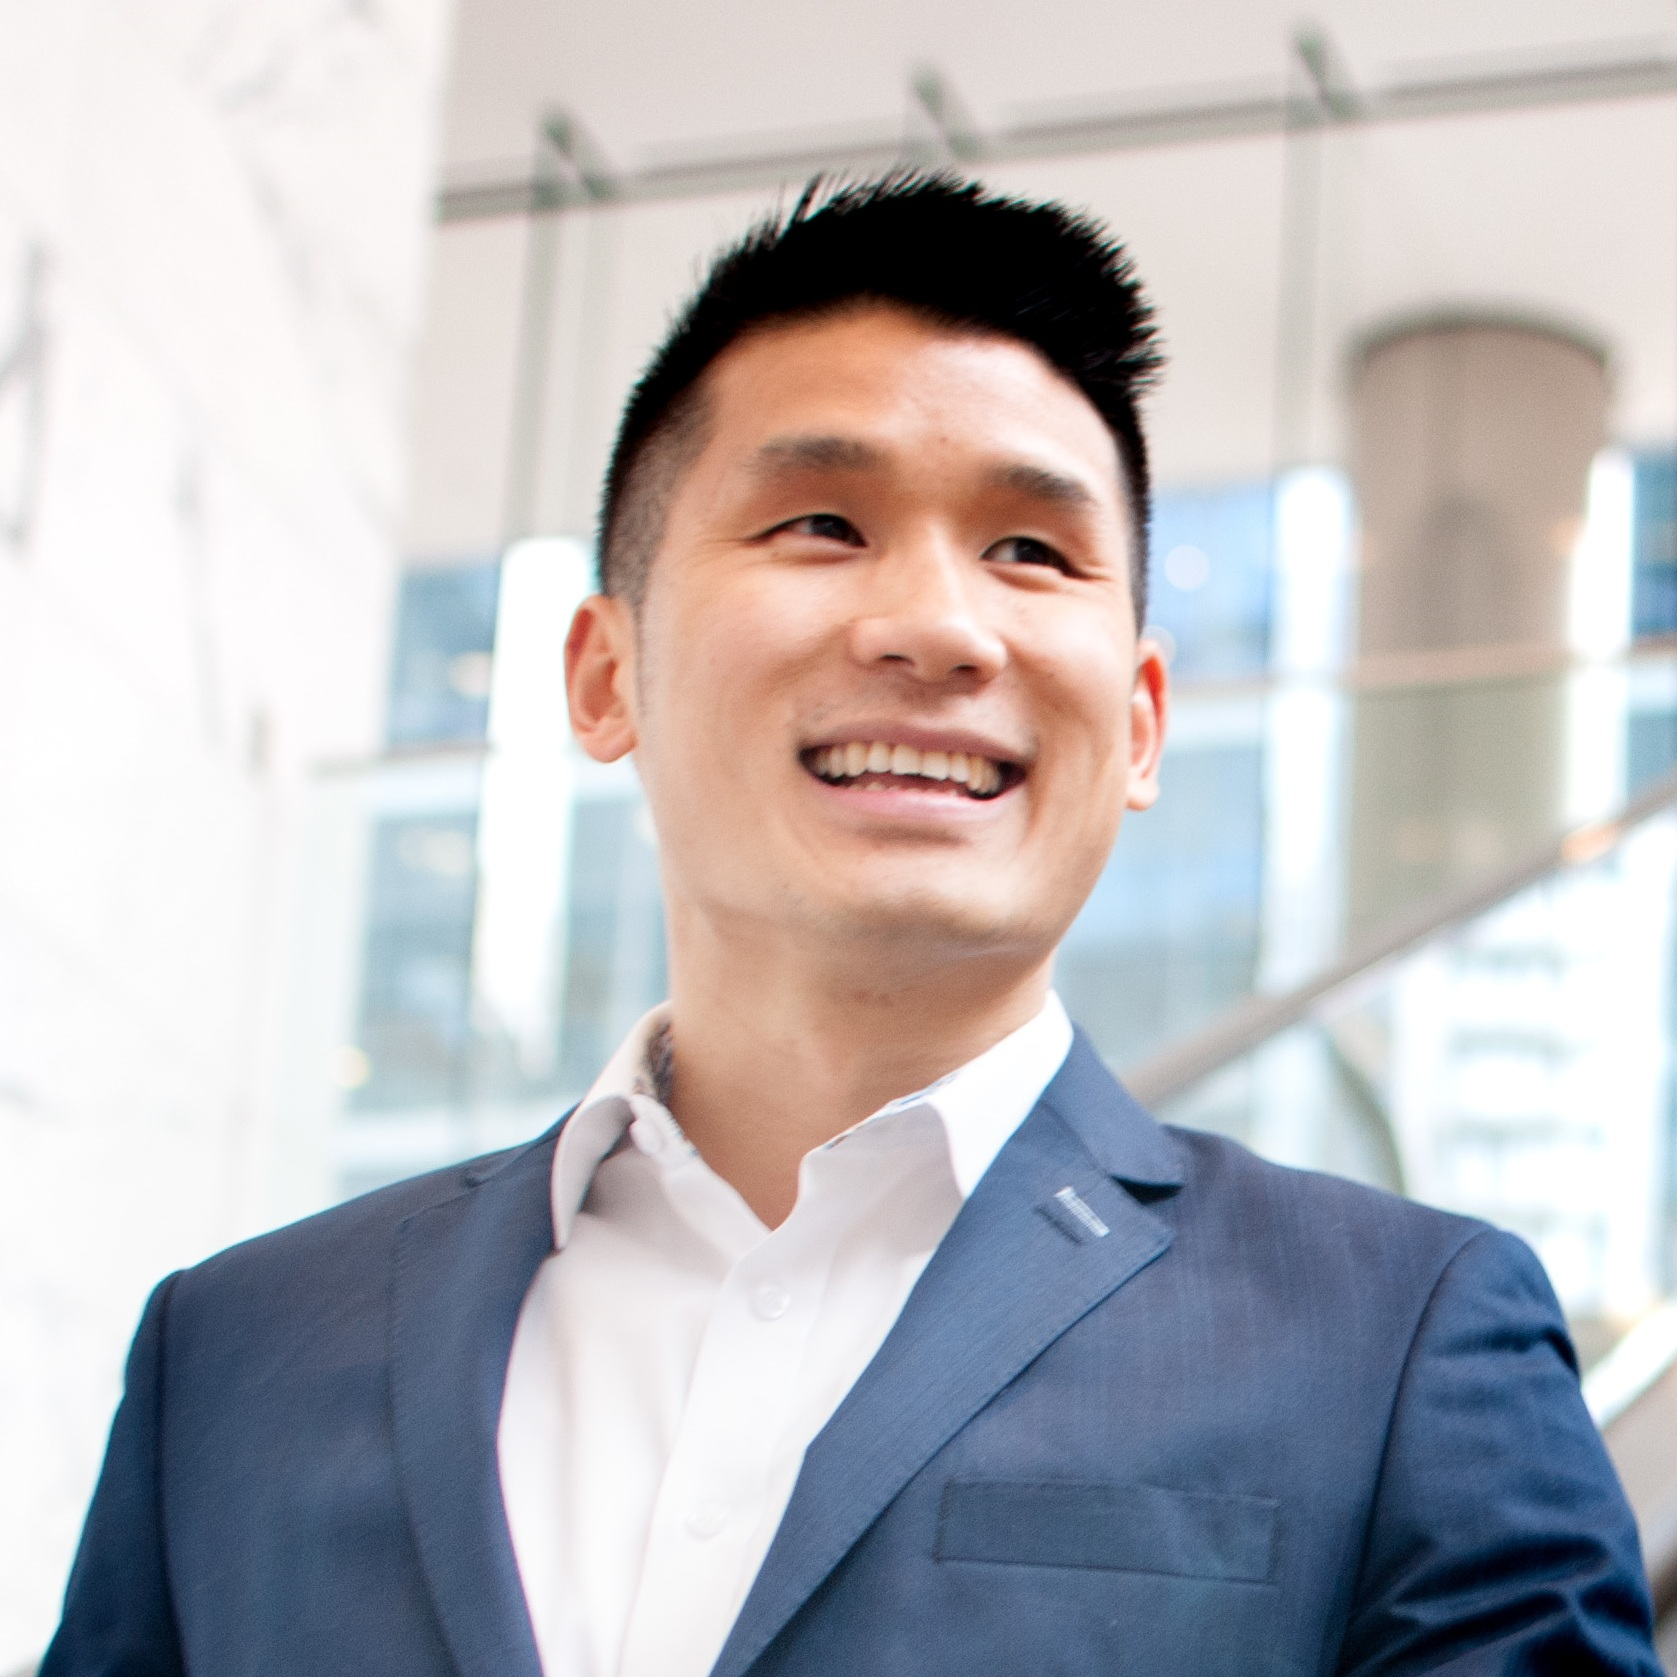 Charles Wah - Charles of Gateway Group is an accomplished land developer and investor in the Hamilton region. Through strategic insights and partnerships, Charles has navigated the successful land development for over 150 housing units.